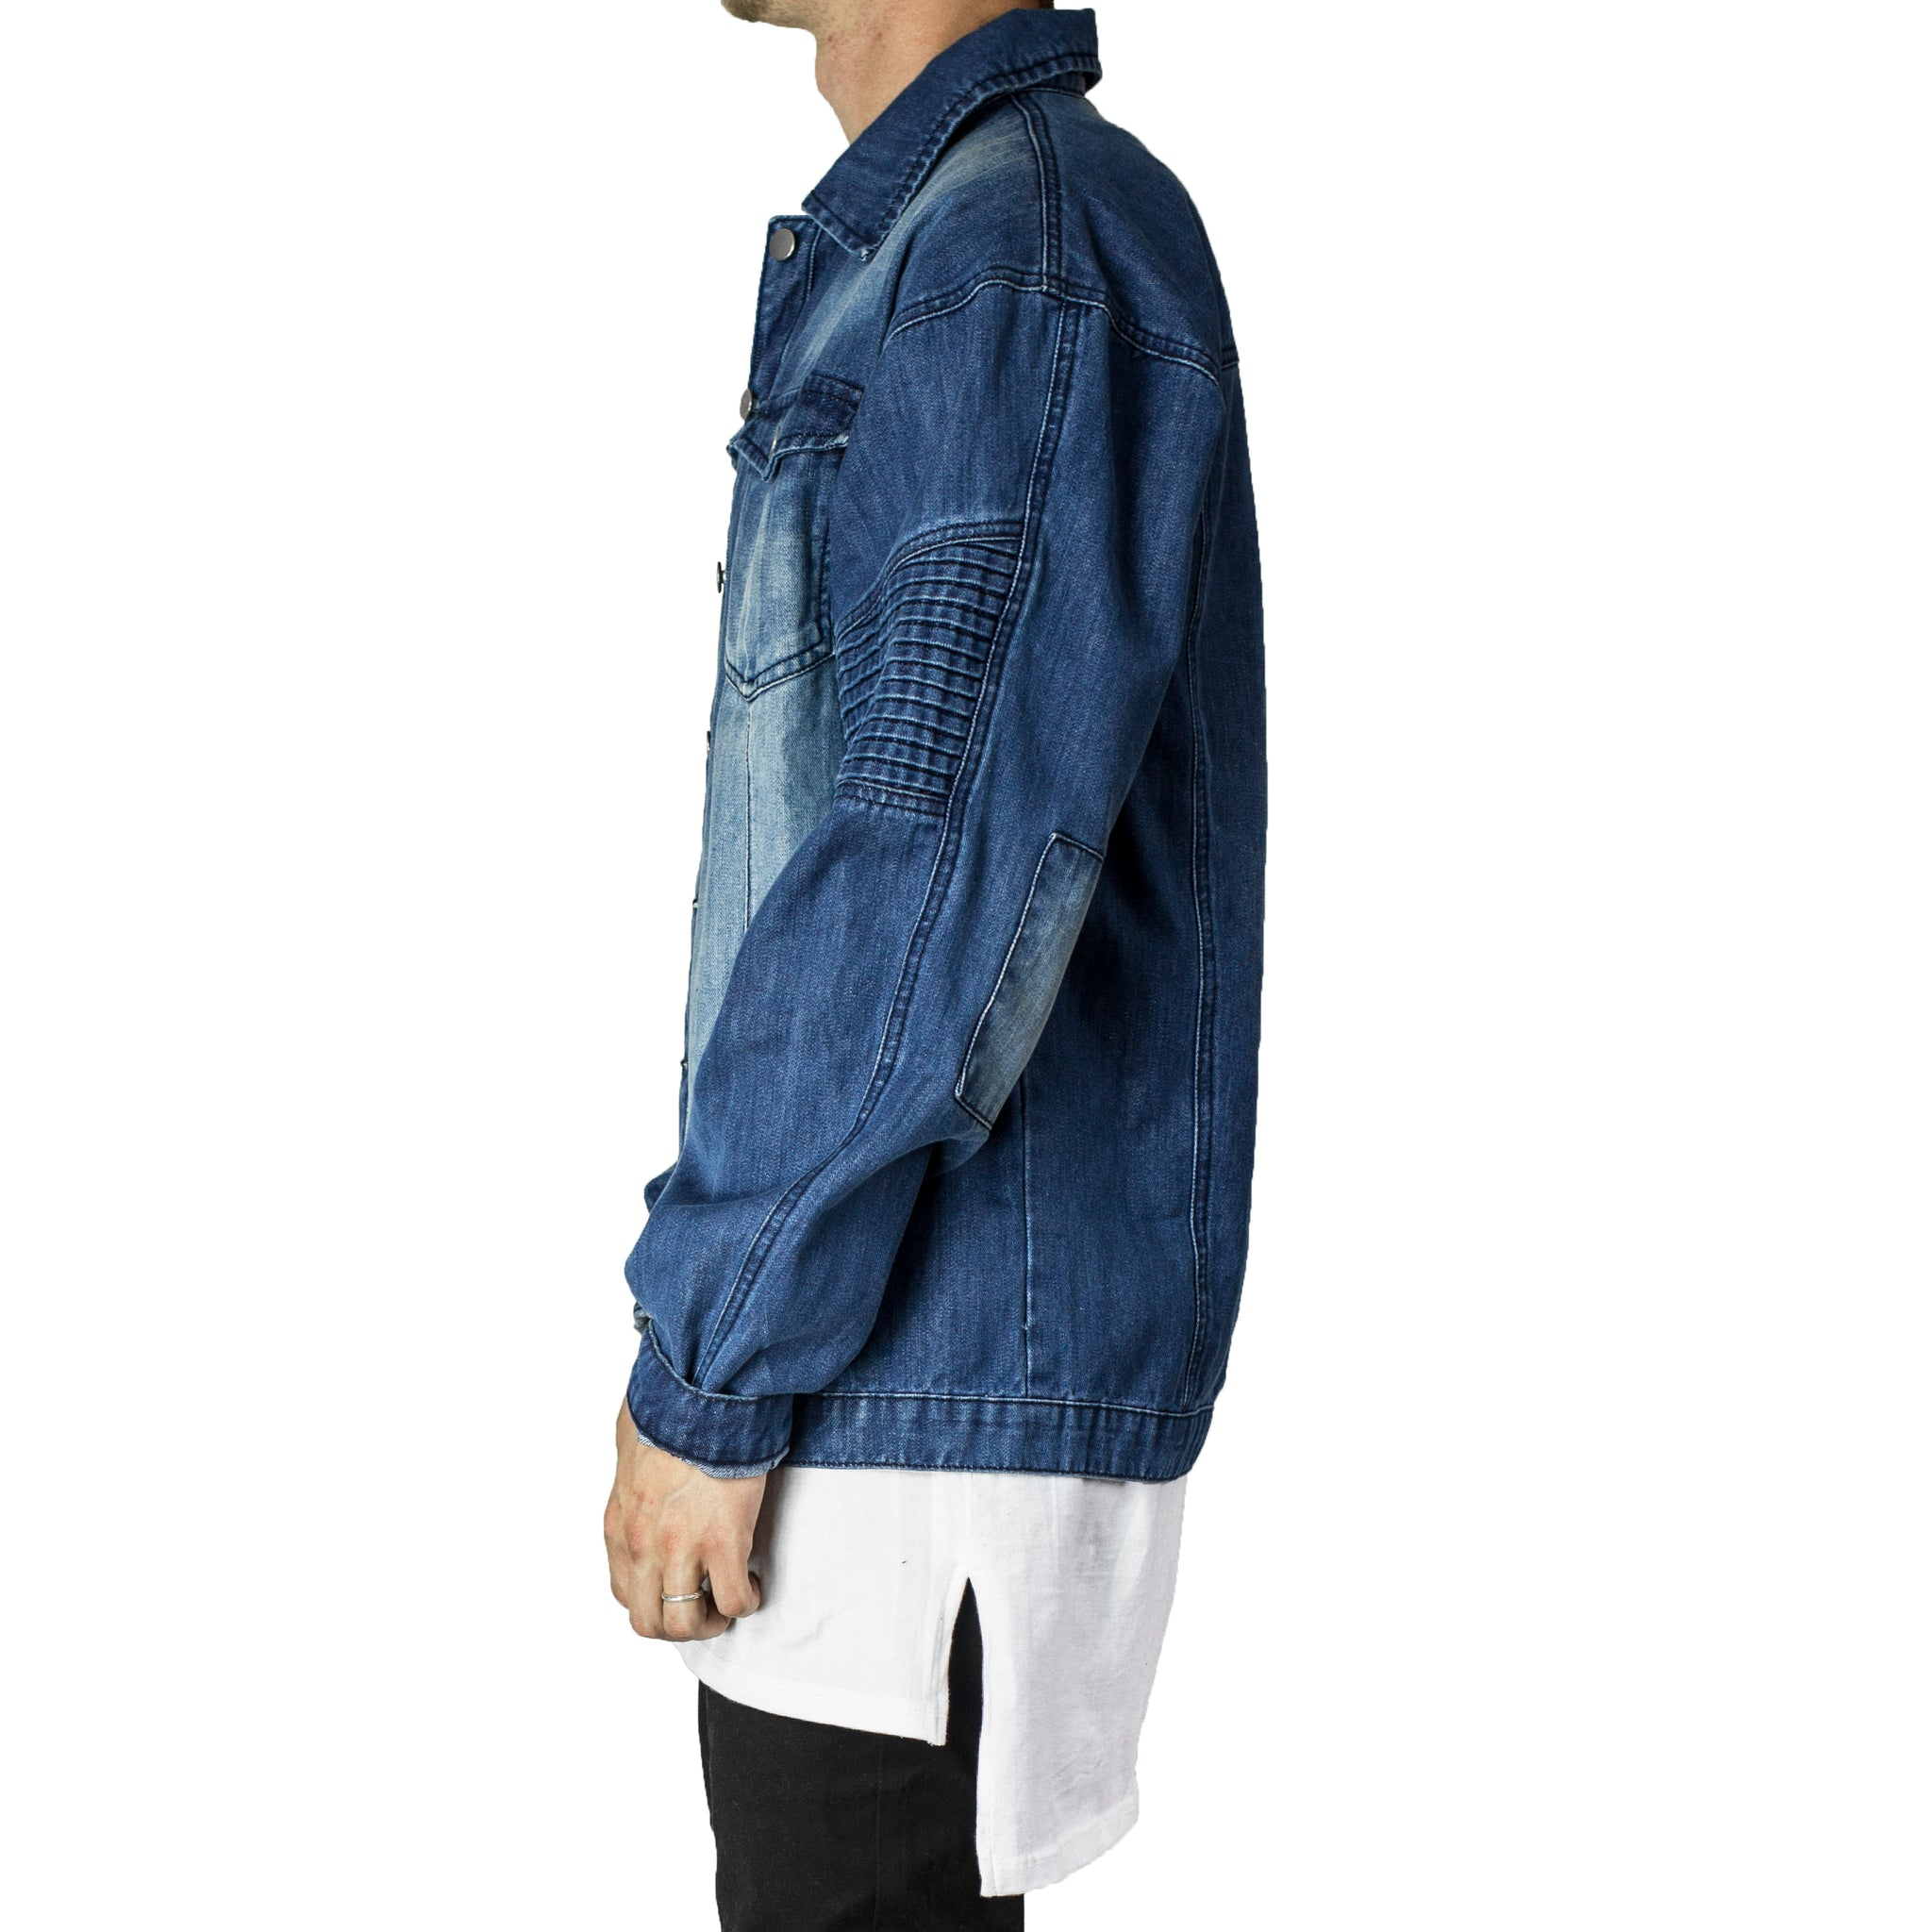 Denim Biker Jacket 2.0 : Blue Wash